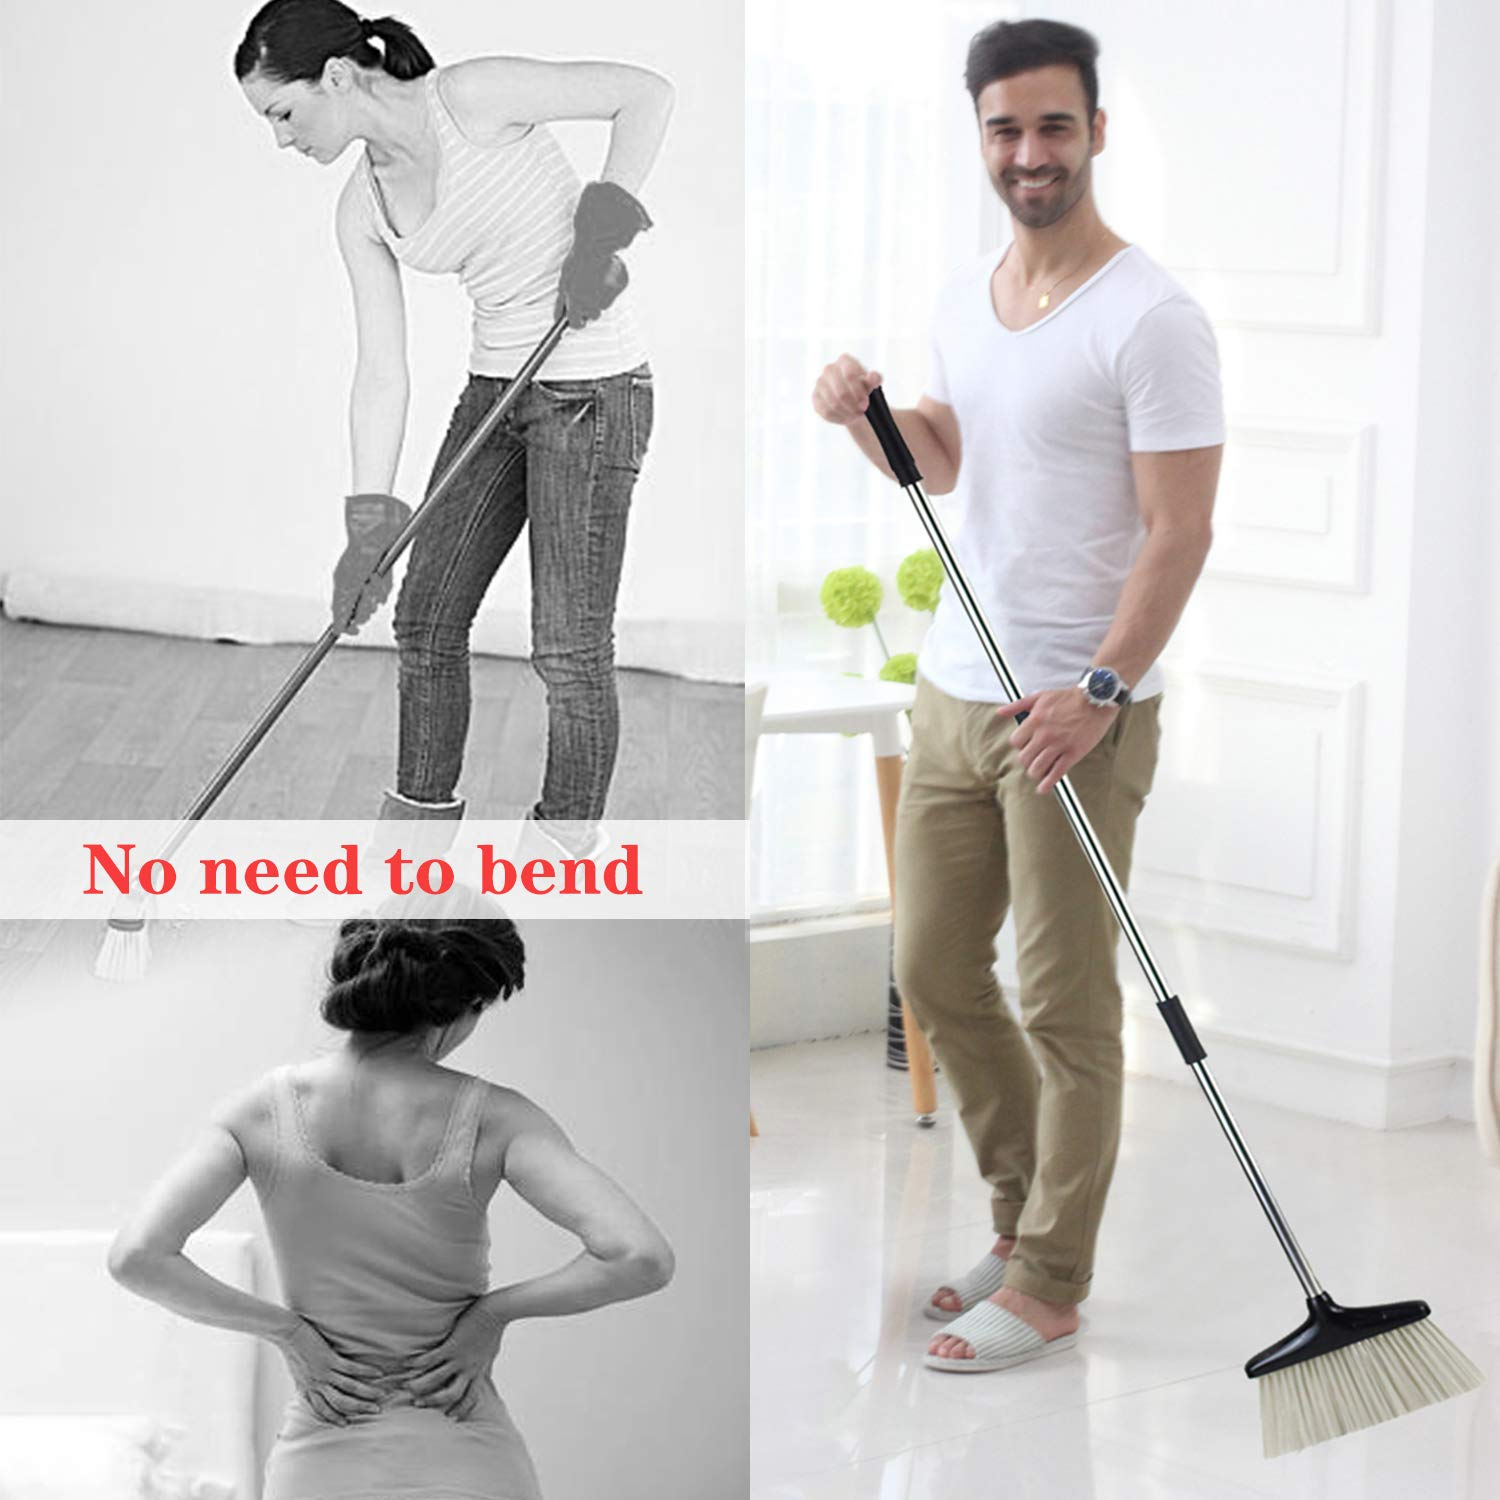 Broom and Dustpan Set with Lid [2019 New Design] Outdoor Indoor Broom Dust Pan 3 Foot Angle Heavy Push Combo Upright Long Handle for Kids Garden Pet Dog Hair Wood Floor Sweep Kitchen House (Black 02) by OLLSDIRE (Image #2)